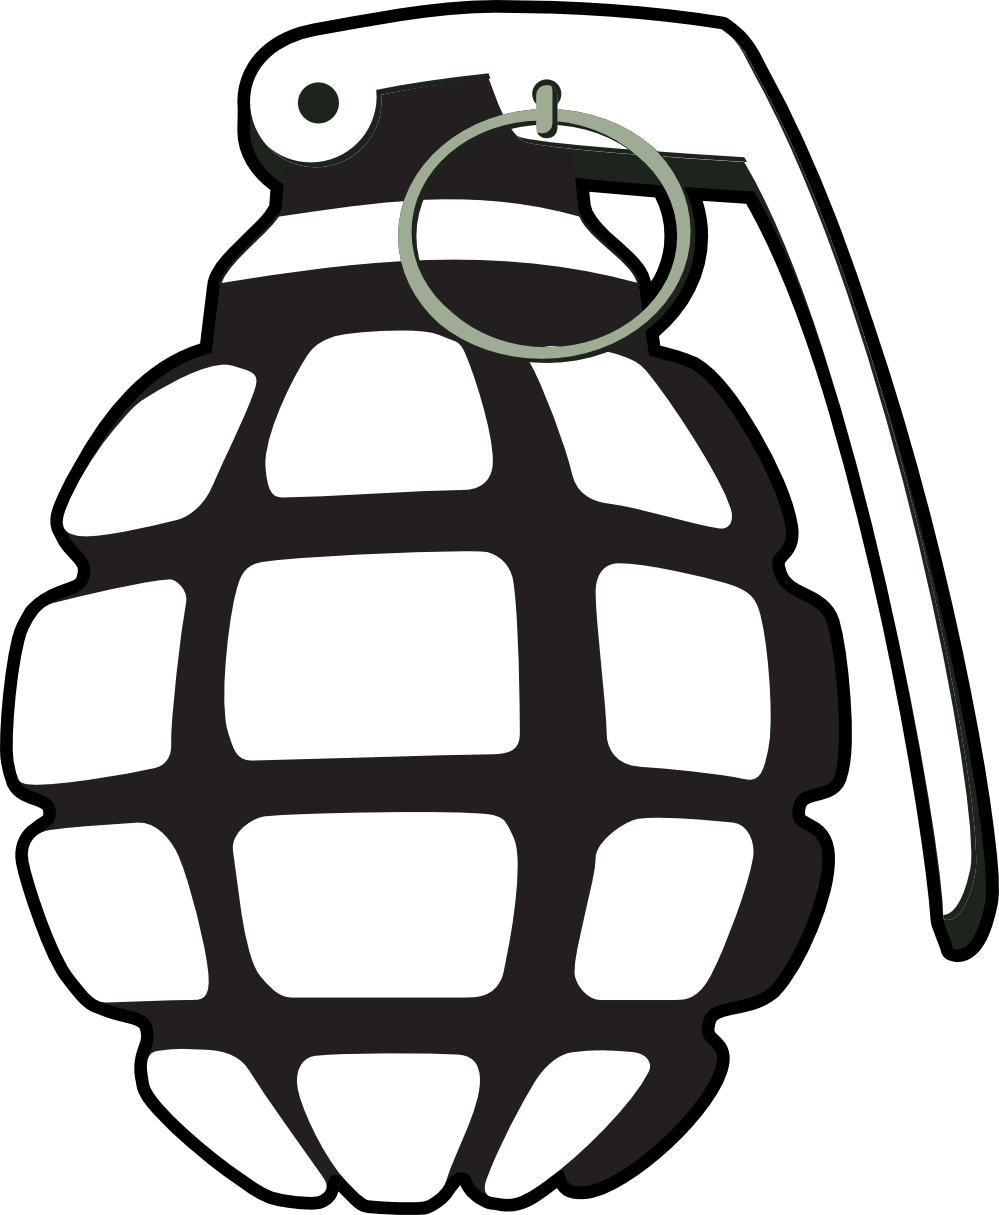 Grenade clipart 20clipart Clipart Hand collection grenade